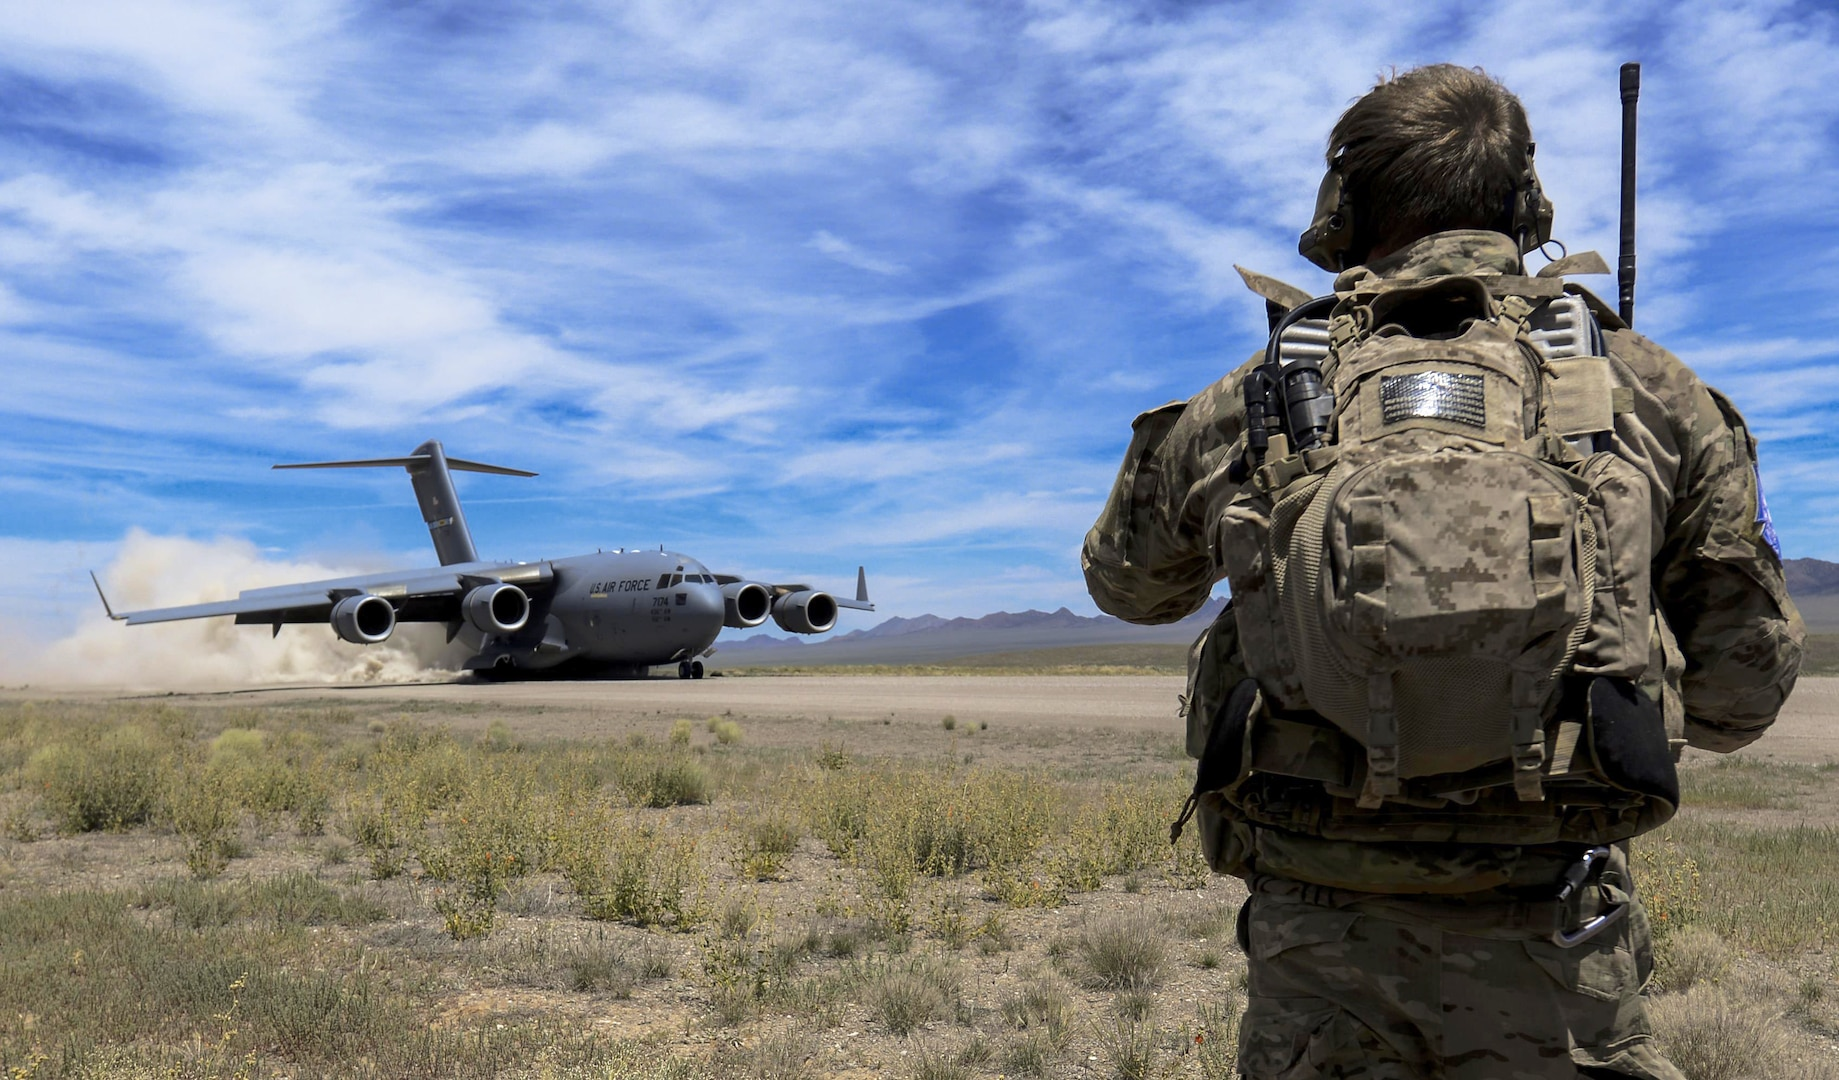 Combat controller watches as C-17 Globemaster III, assigned to 17th Weapons Squadron, Nellis Air Force Base, Nevada, lands on airstrip in Nevada Test and Training Range during joint forcible entry exercise, June 16, 2016 (U.S. Air Force/Kevin Tanenbaum)